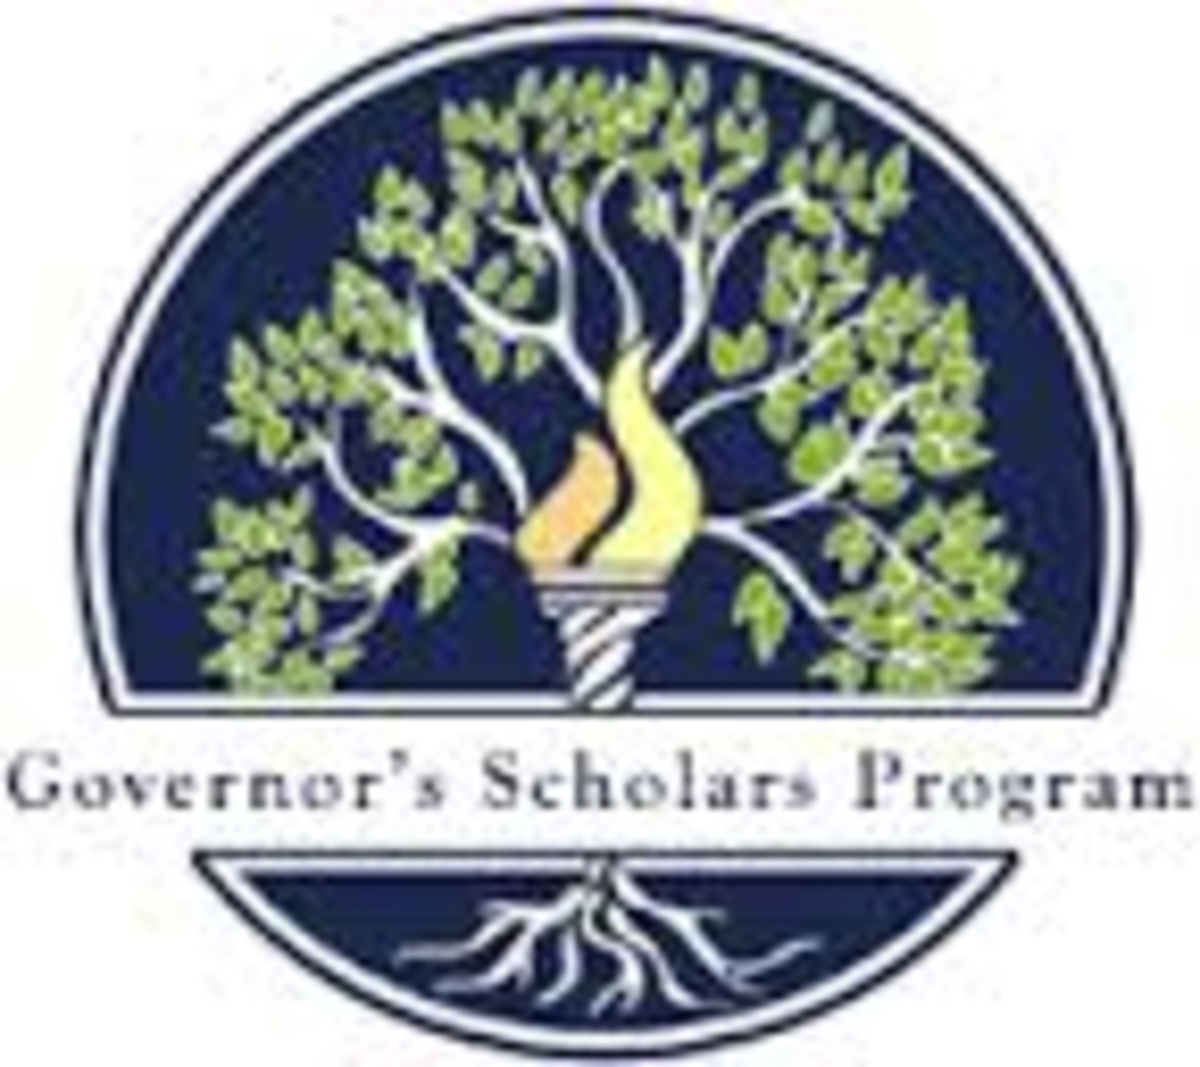 Governor's Scholars Program Crash Course